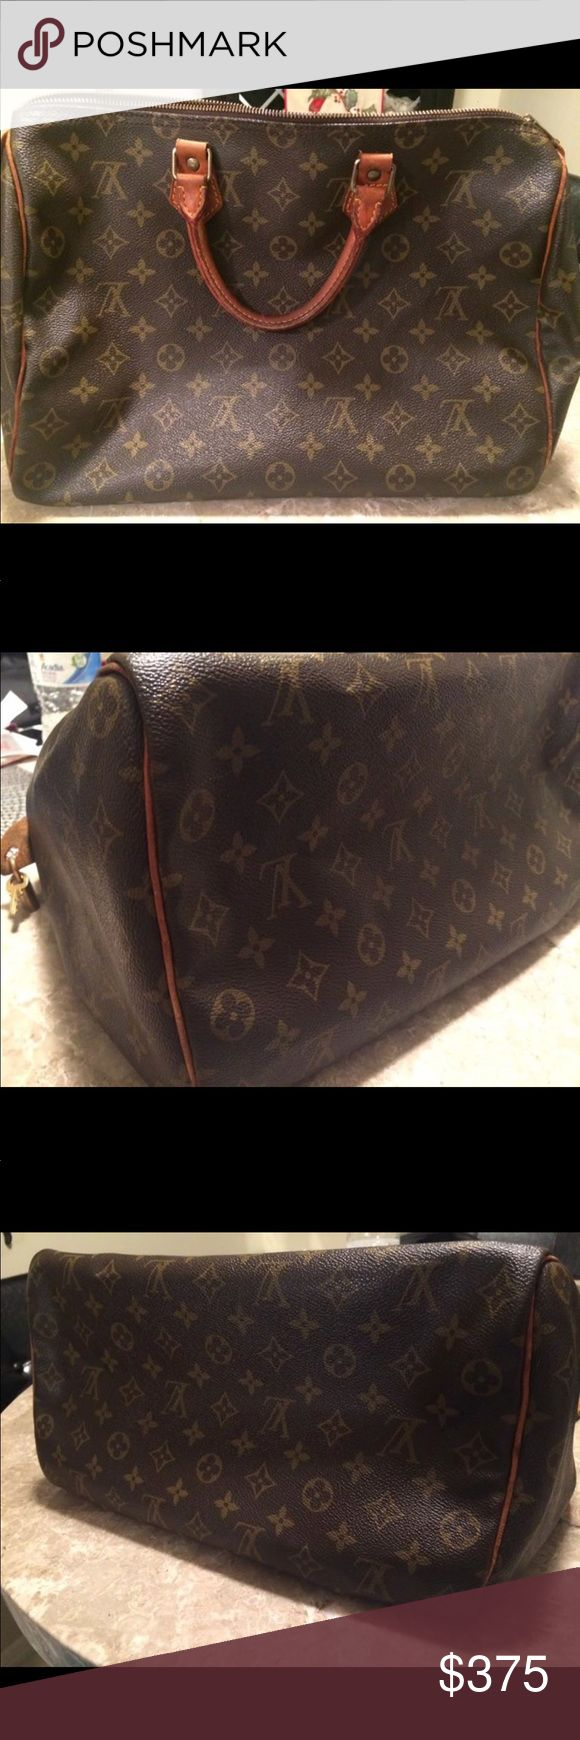 Louis Vuitton Speedy 35 LV Speedy 35. Used condition. No piping is showing. No rips or tears. Zips perfectly fine. Code: VI 0992 with Lock and key 🔐 Louis Vuitton Bags